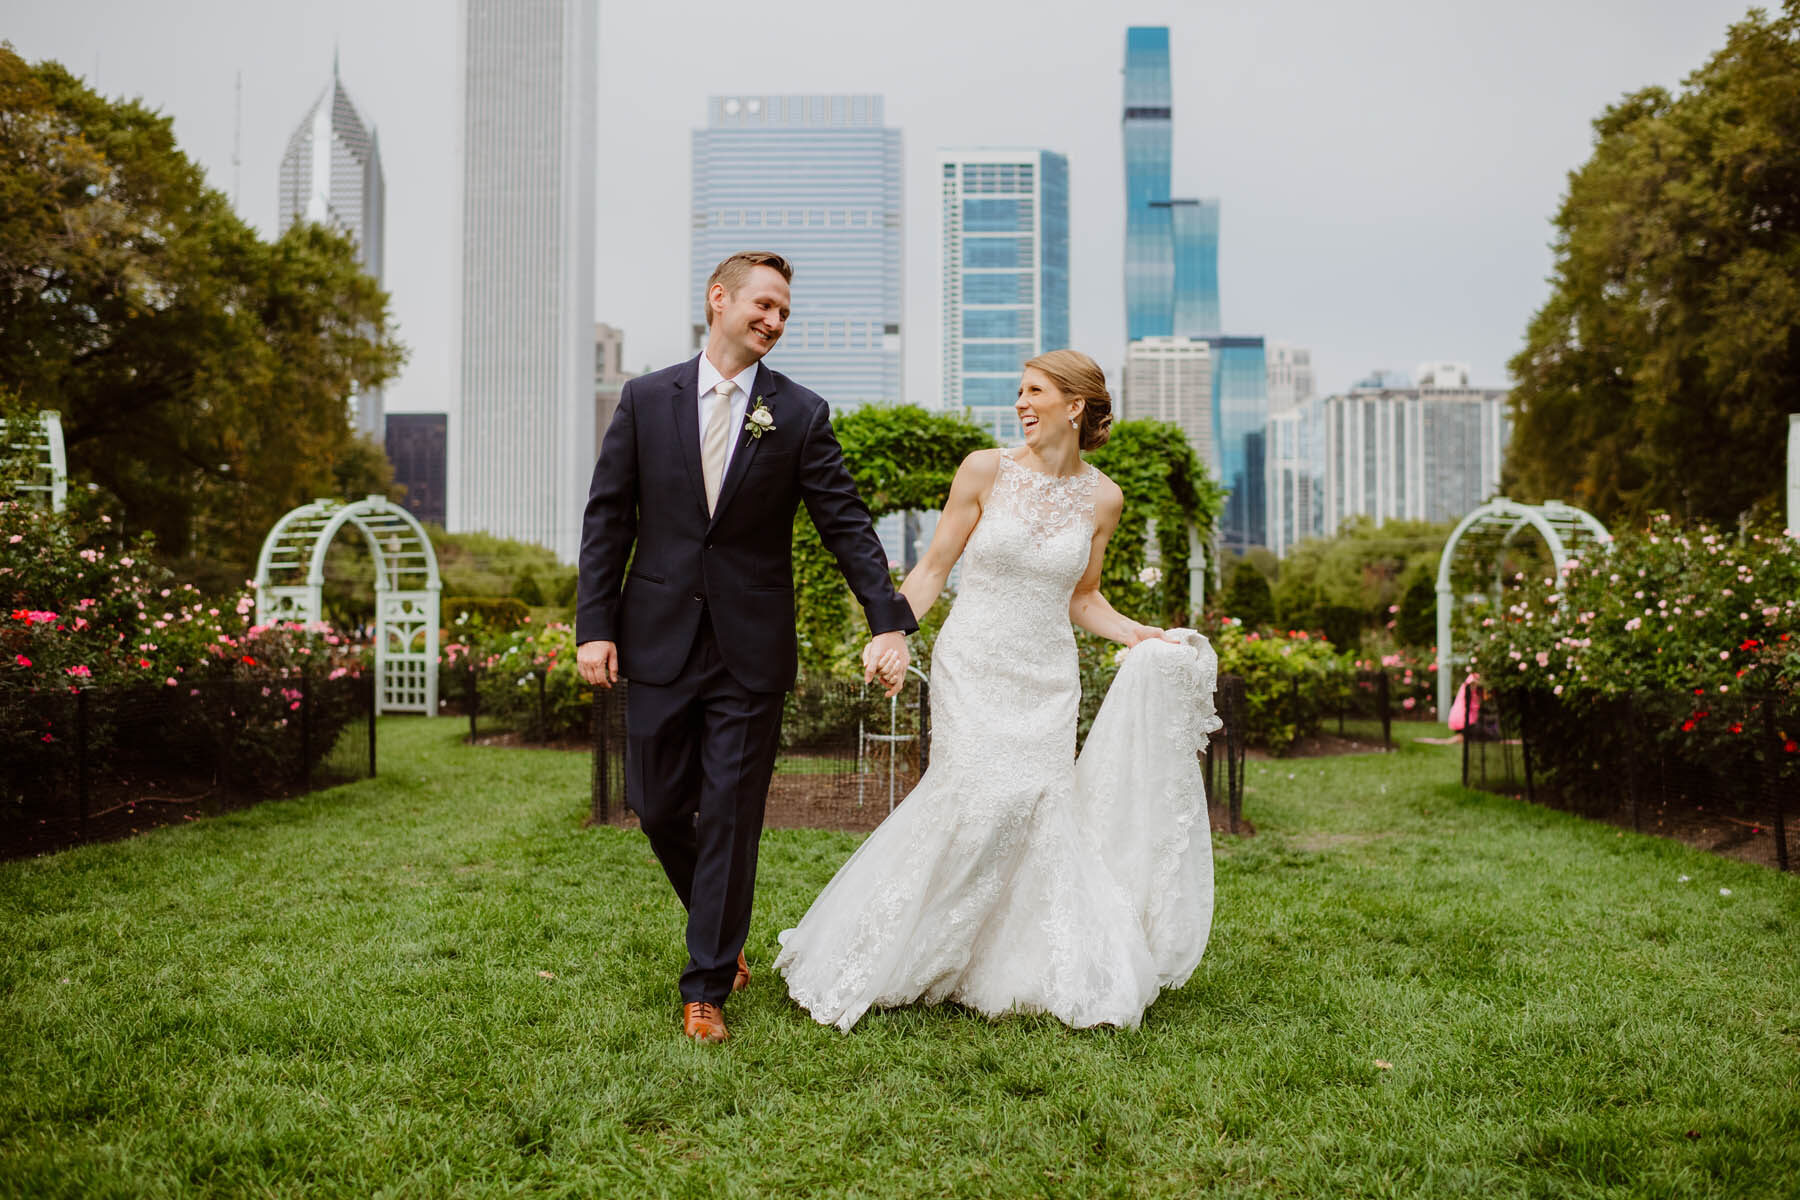 Grant Park wedding photo